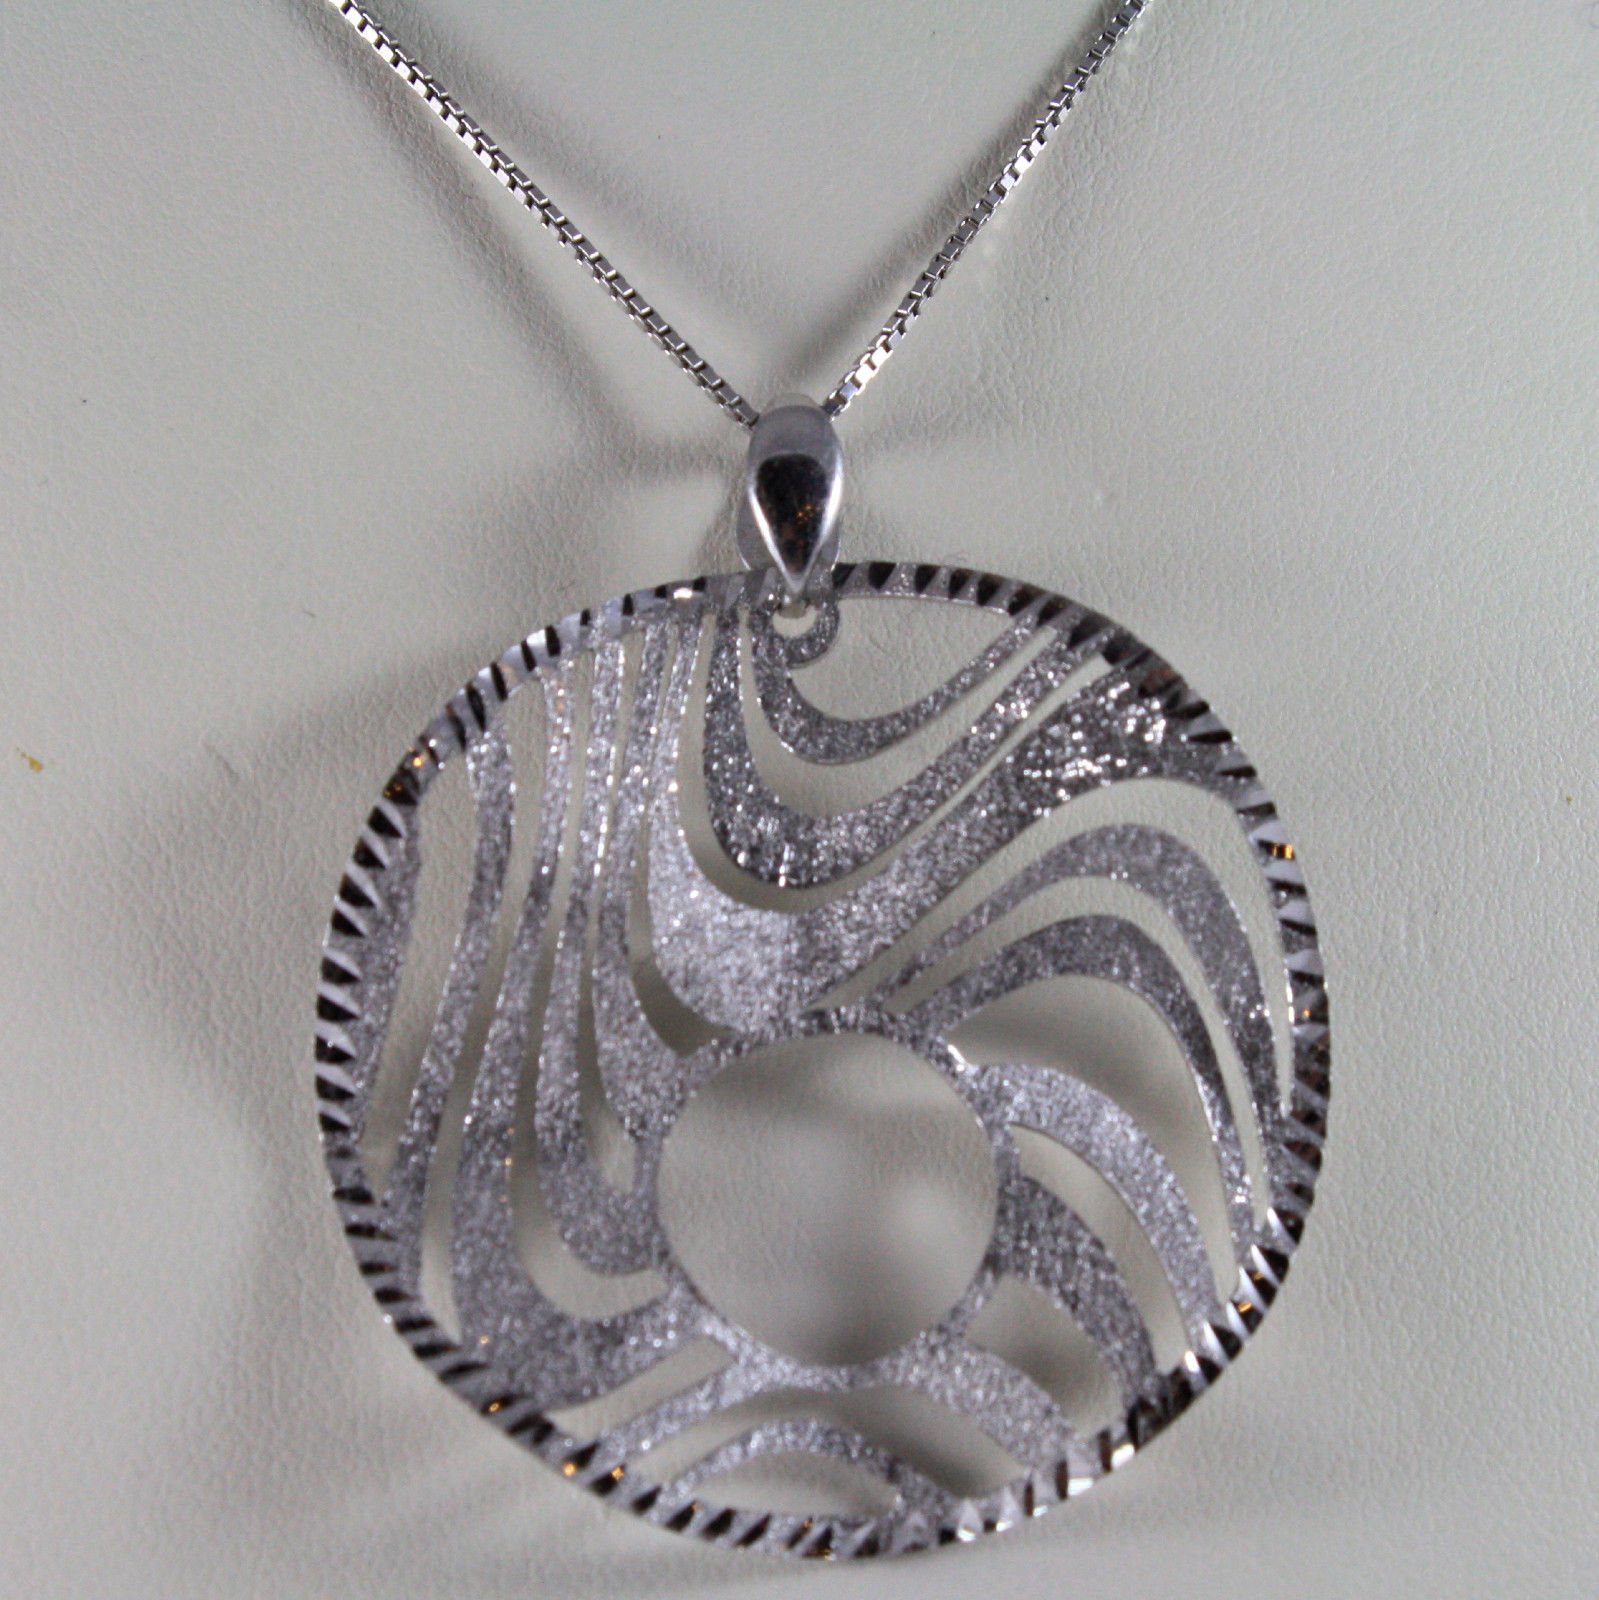 .925 RHODIUM SILVER NECKLACE, FASHION STYLE PENDANT, LIGHT AND BRIGHT.